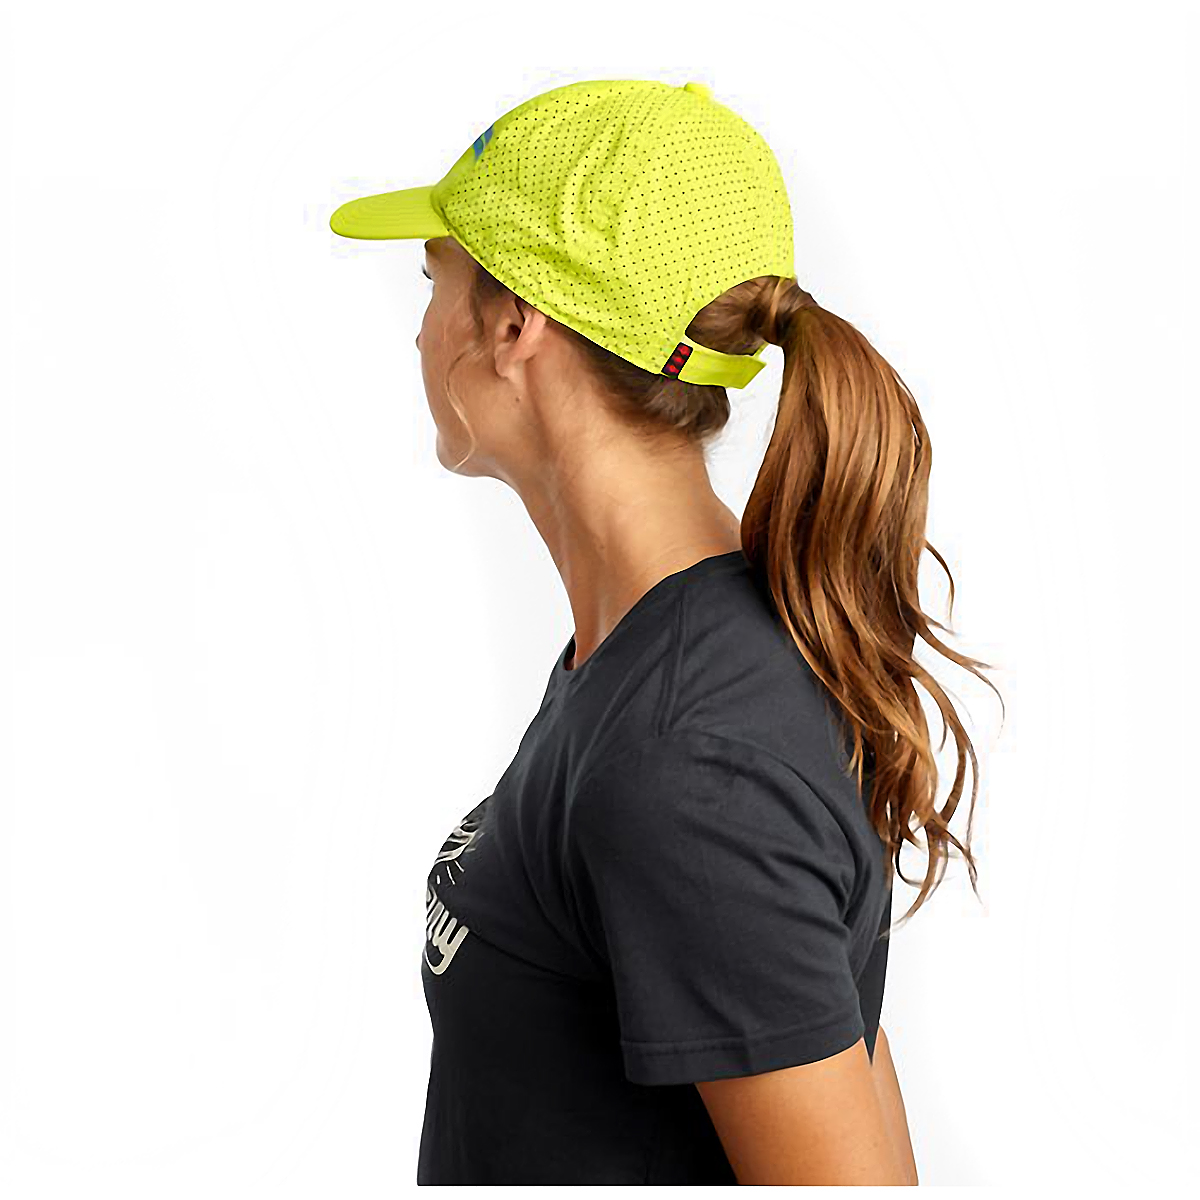 Saucony Doubleback Hat - Color: Evening Primrose, Evening Primrose, large, image 2